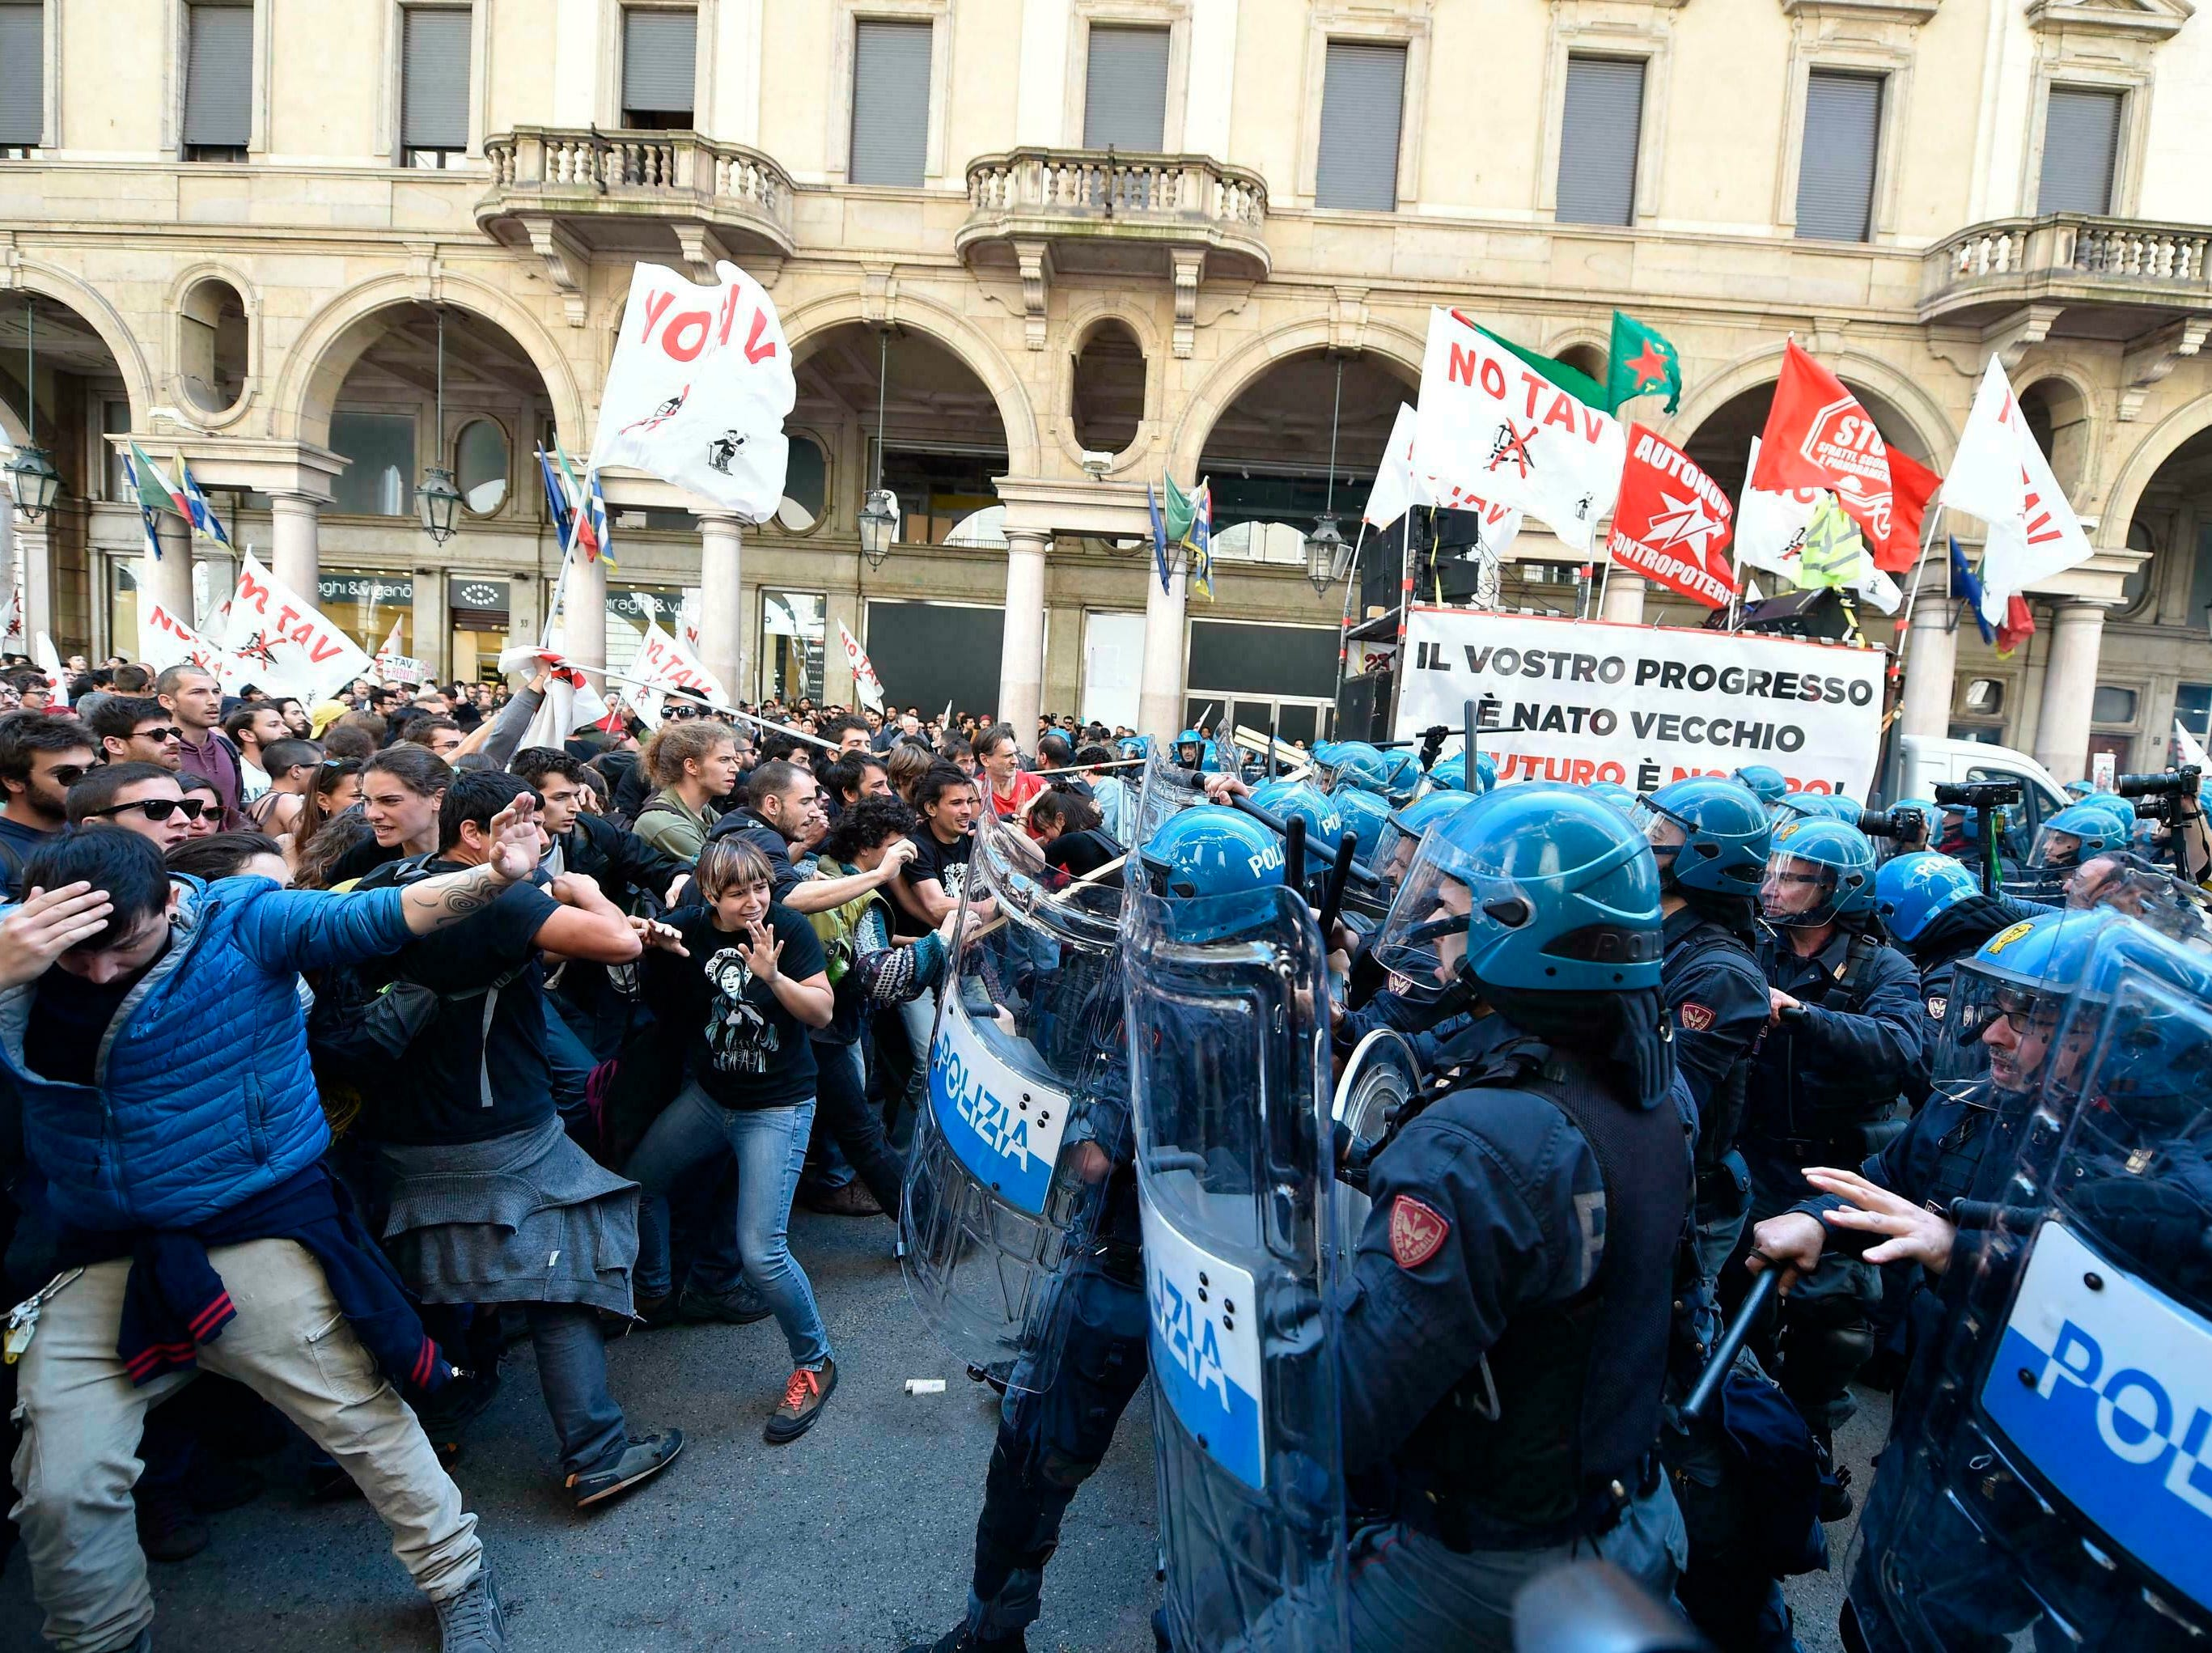 Demonstrators confront police officers as scuffles break out during a May Day rally in Turin, Italy, Wednesday, May 1, 2019.